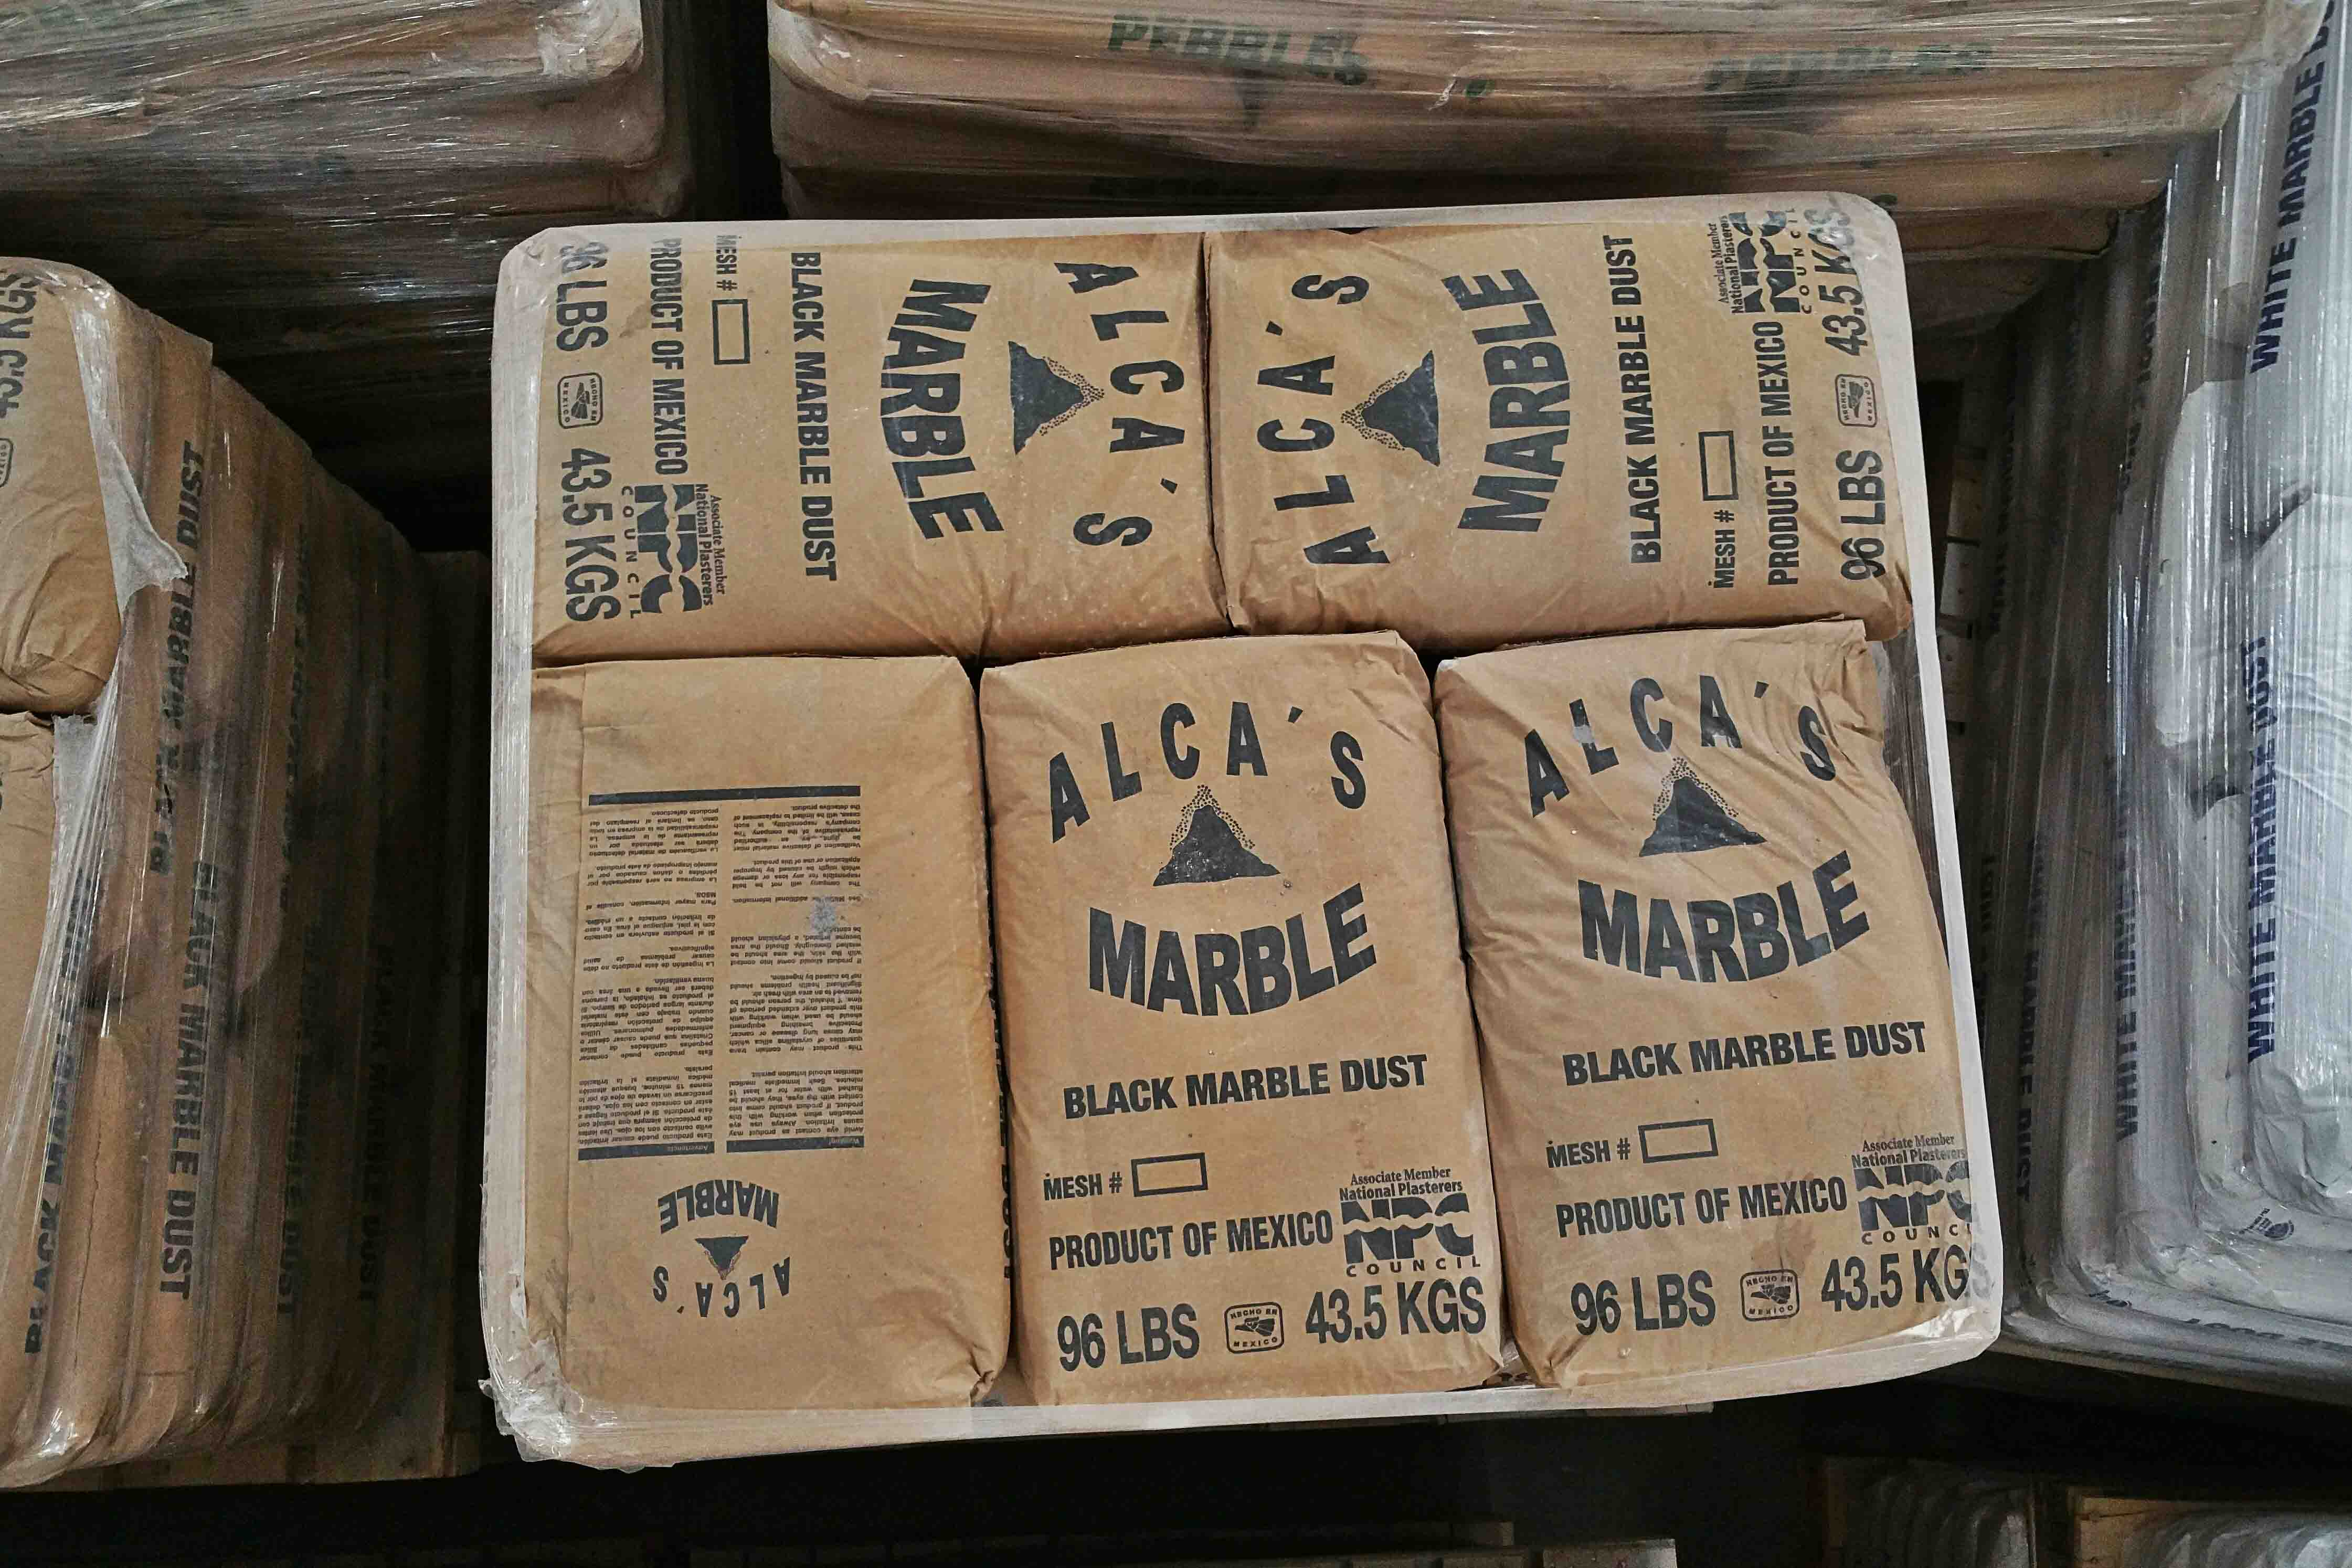 Alcas Marble Marble Dust